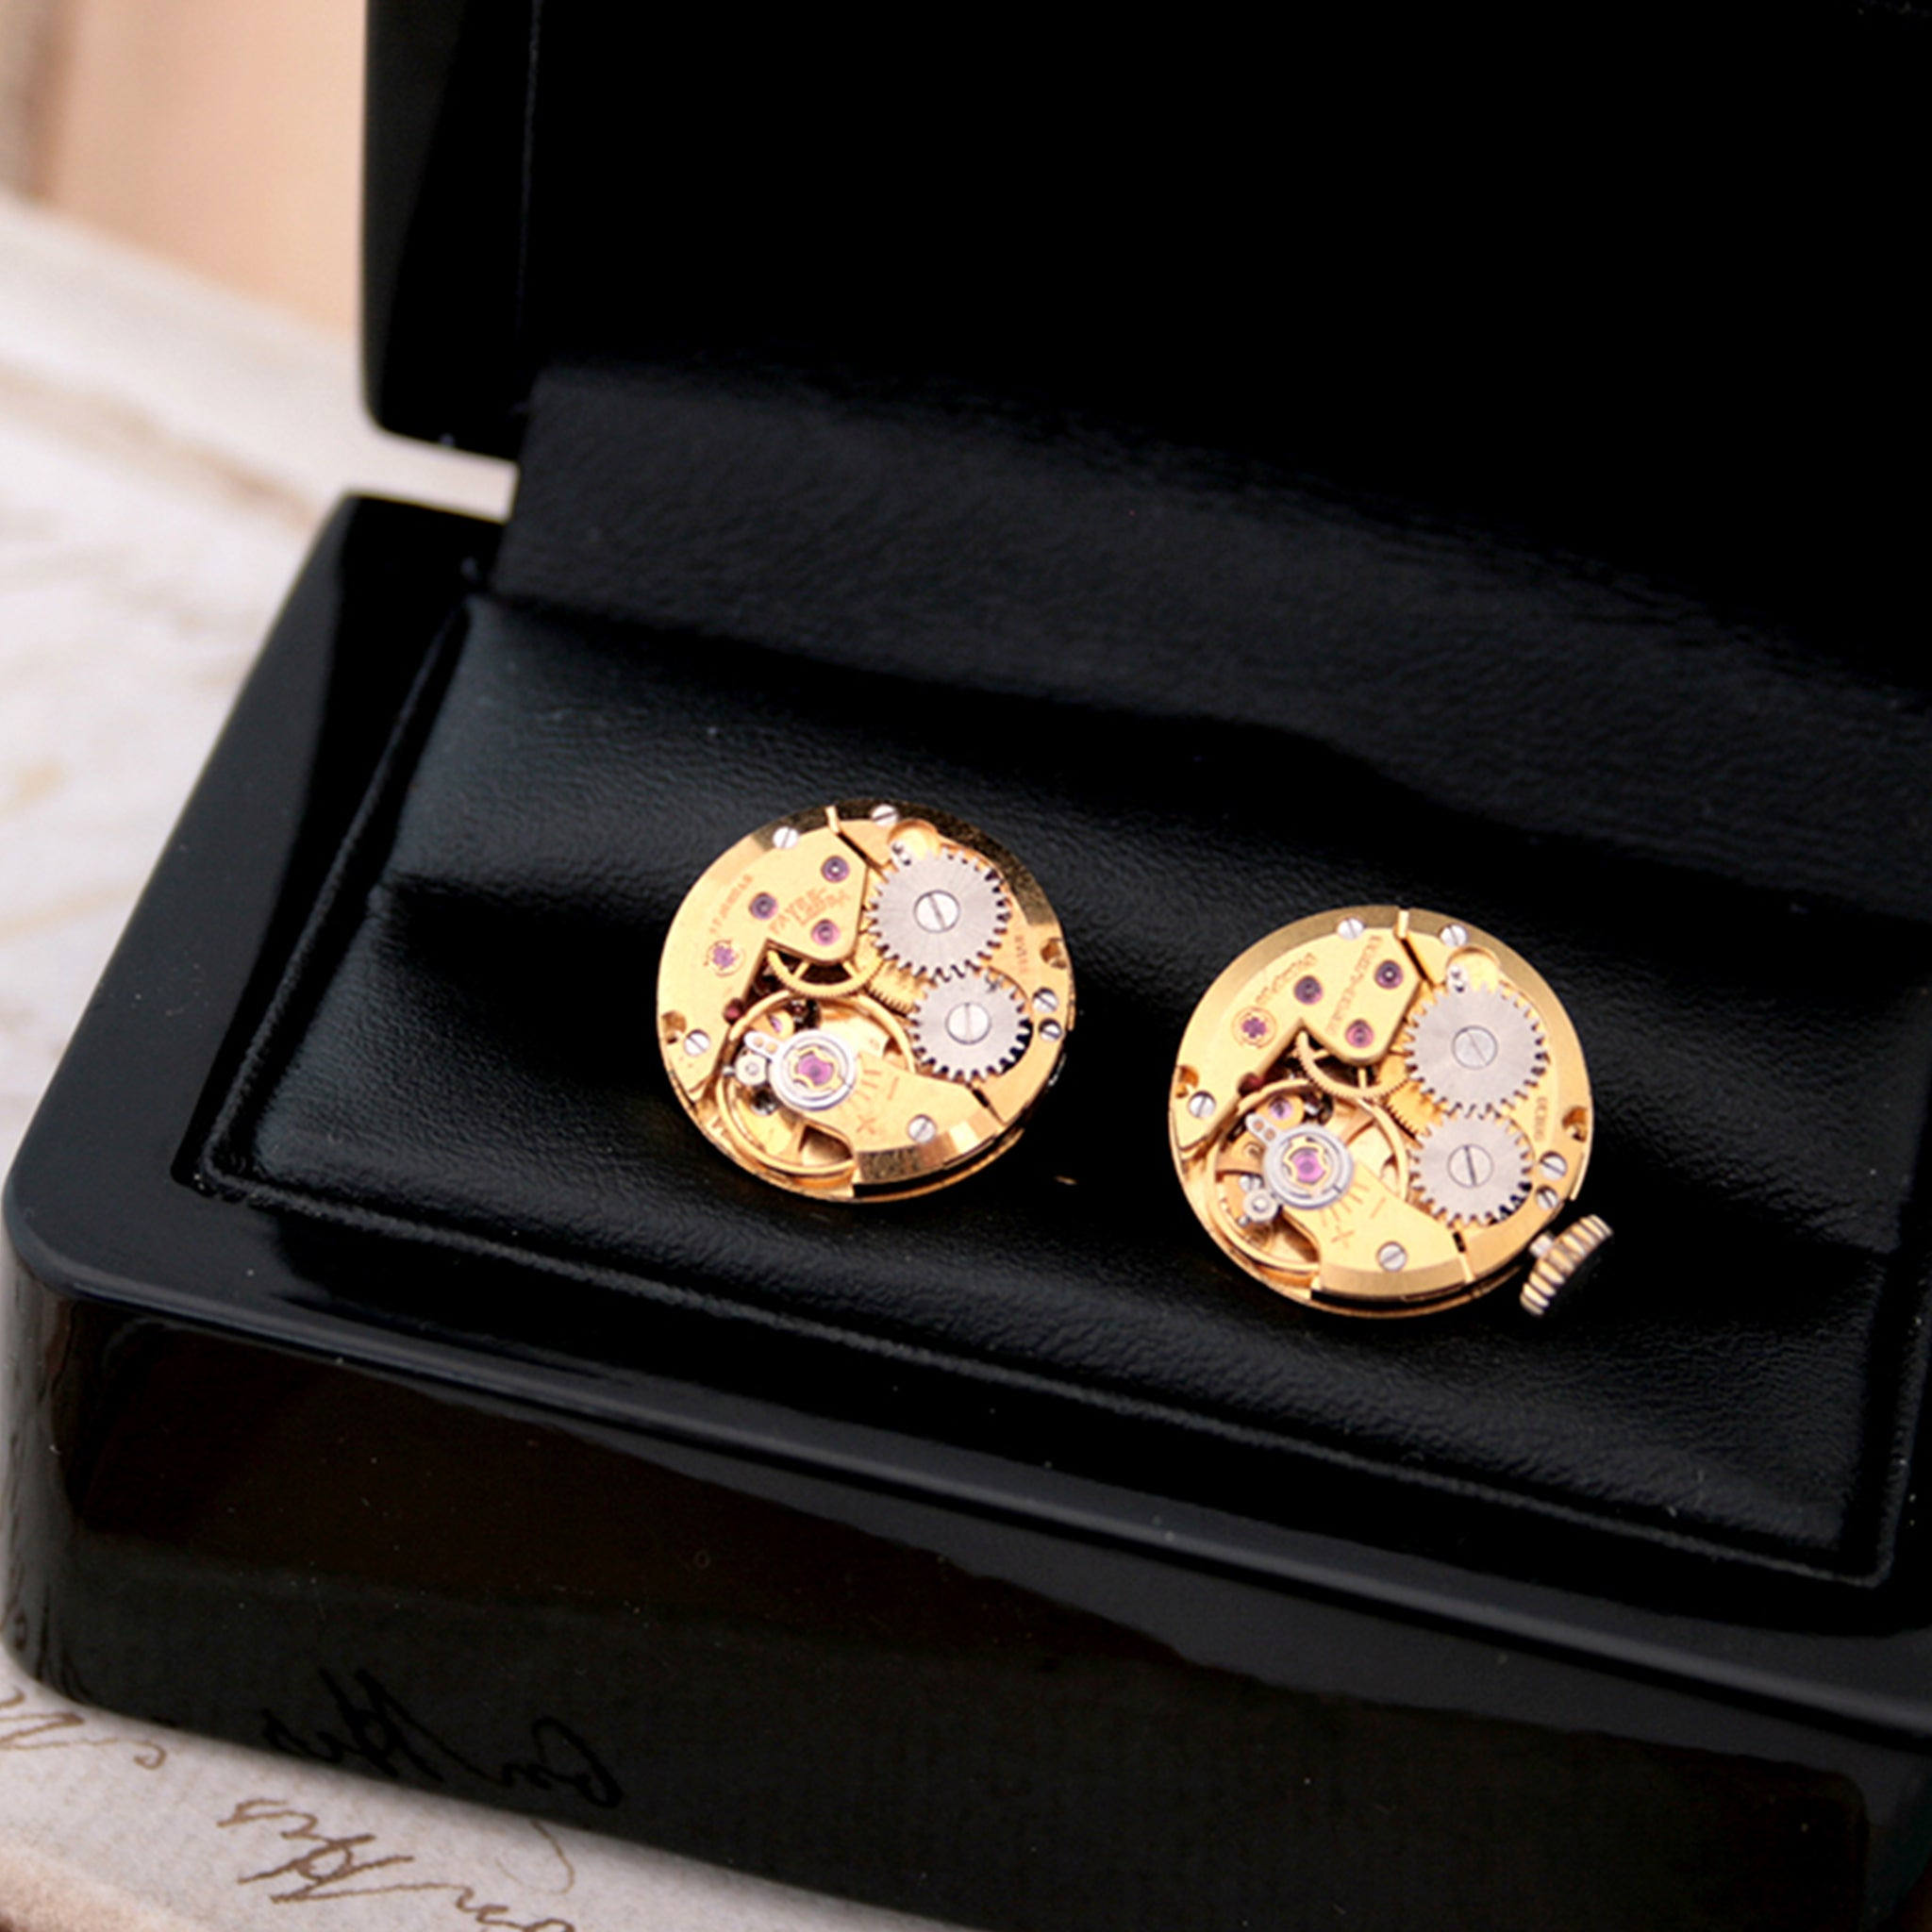 Gold Cufflinks in Steampunk Style in ebpony wooden box